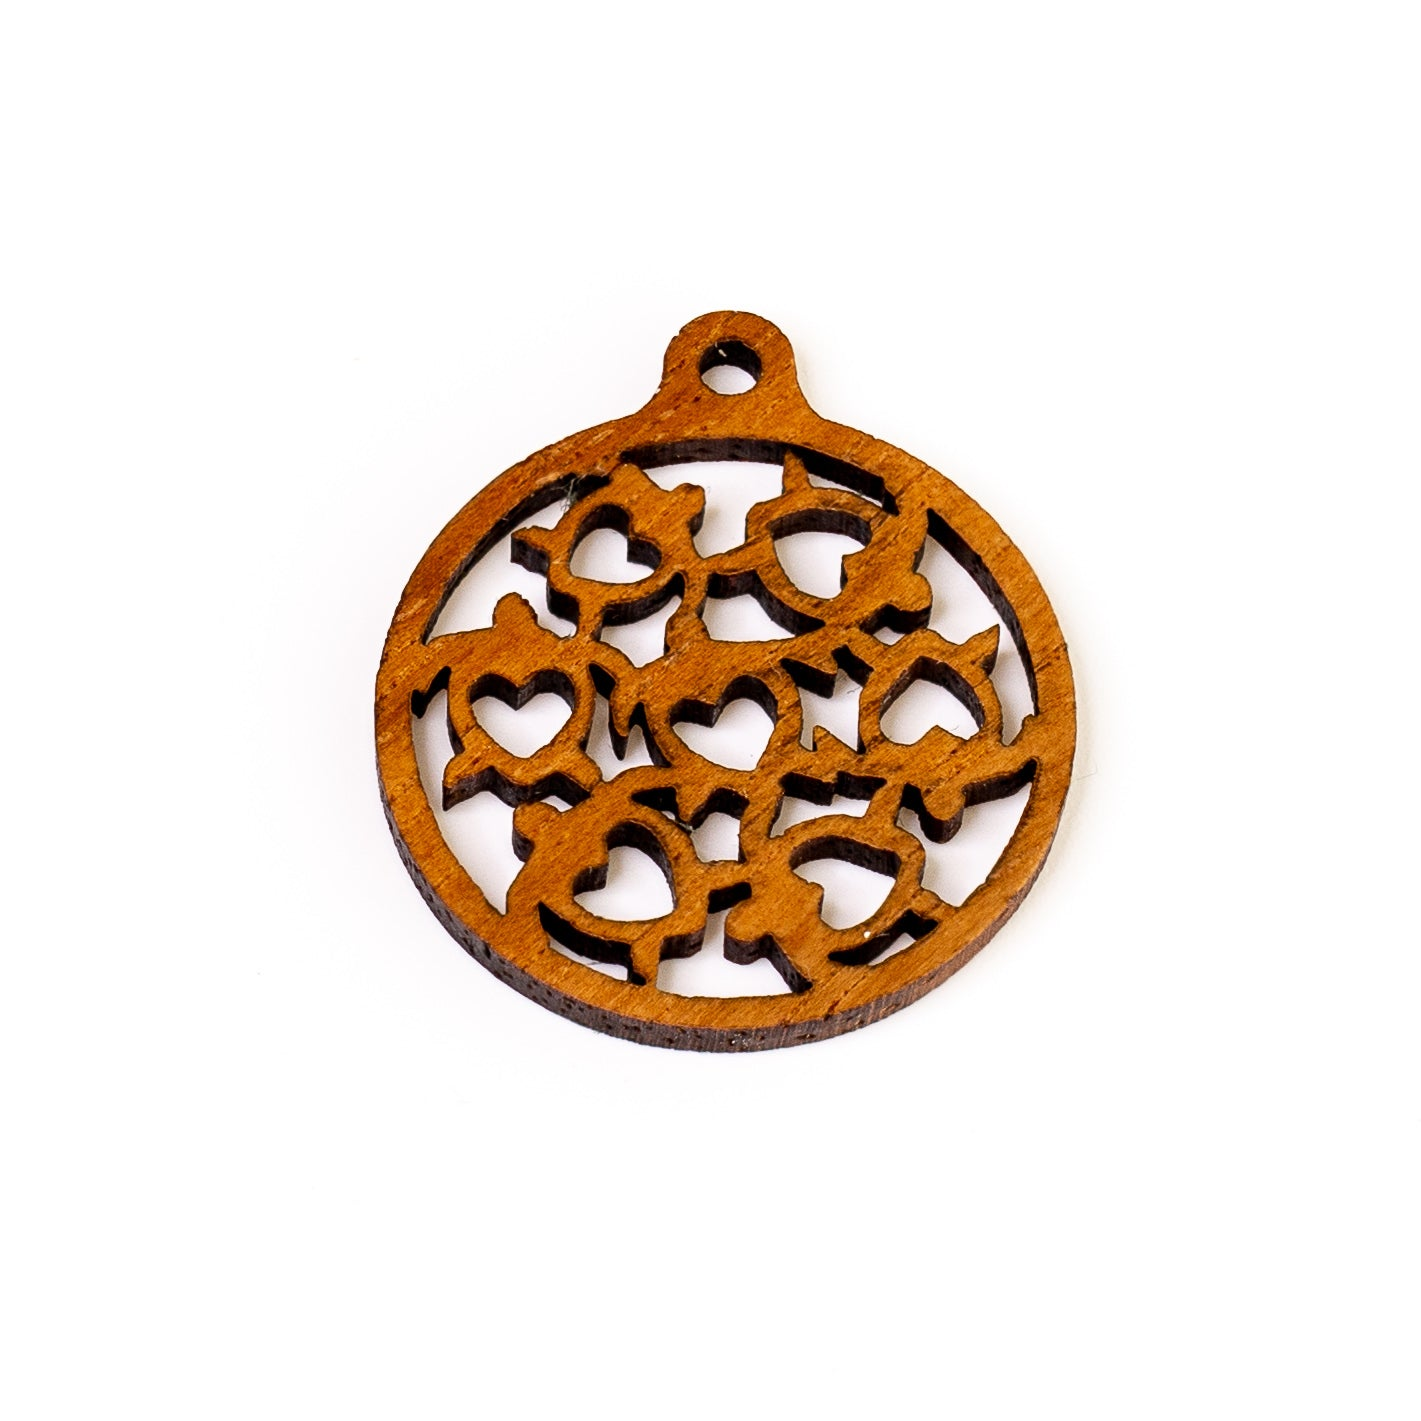 7 Heart Honu Solid Koa Charm - 1 pc.